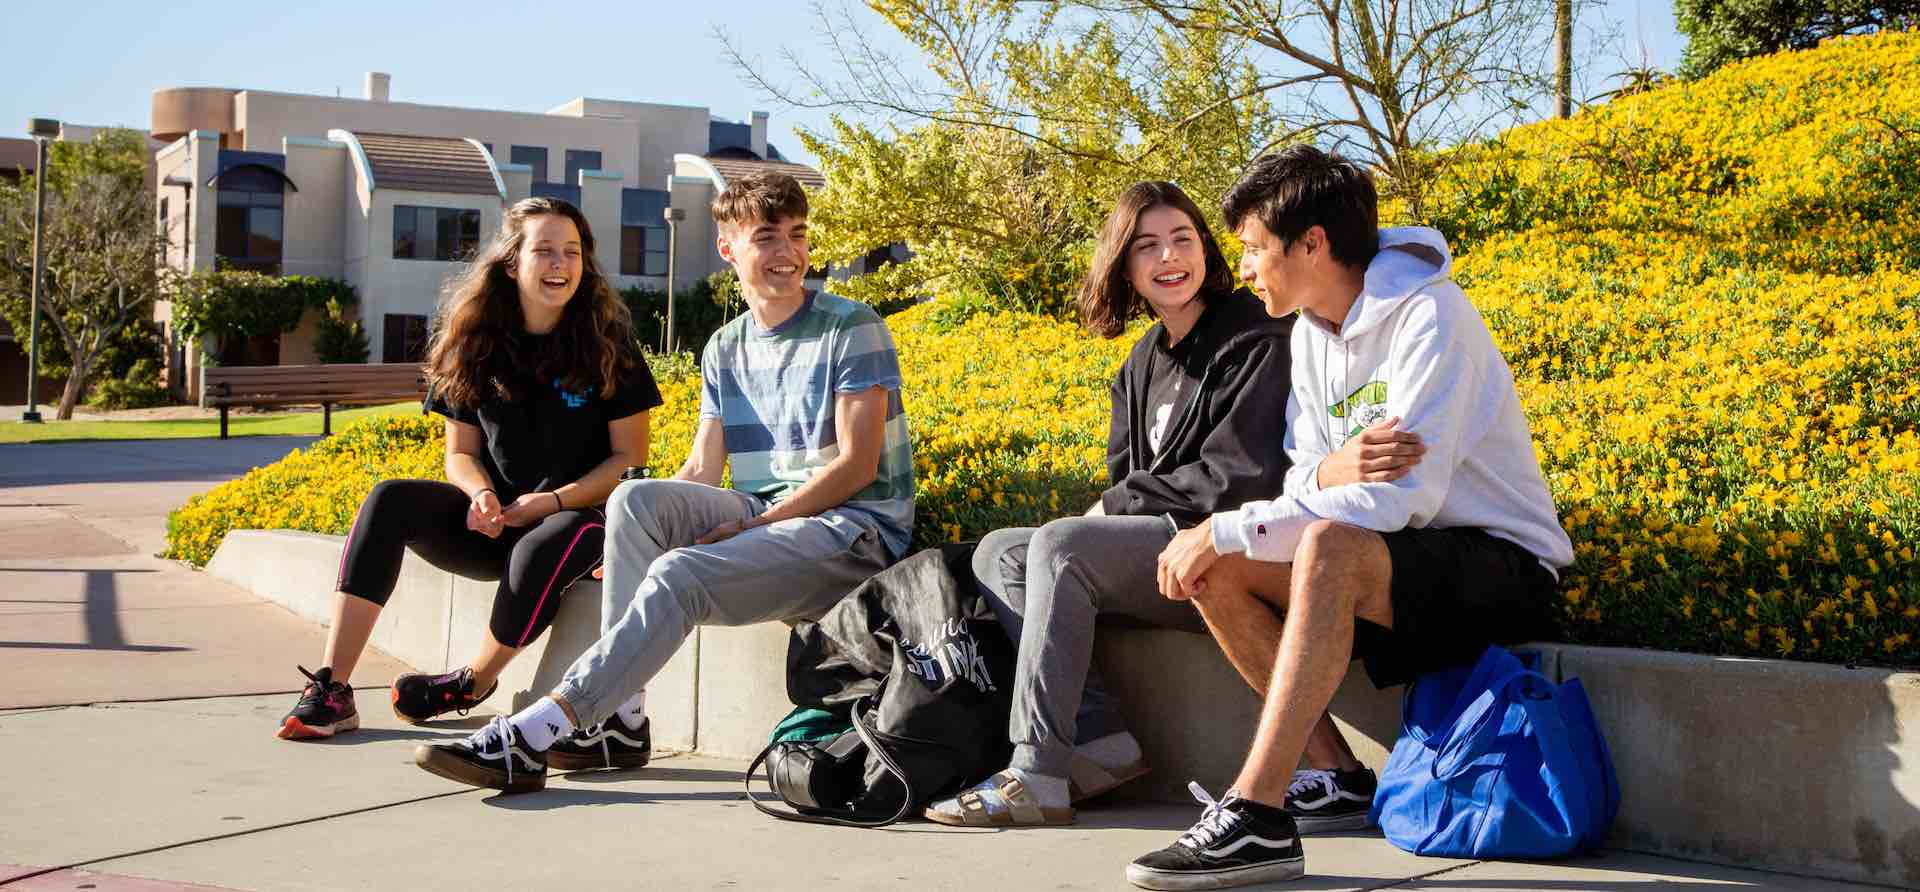 four students sitting outdoors smiling and interacting